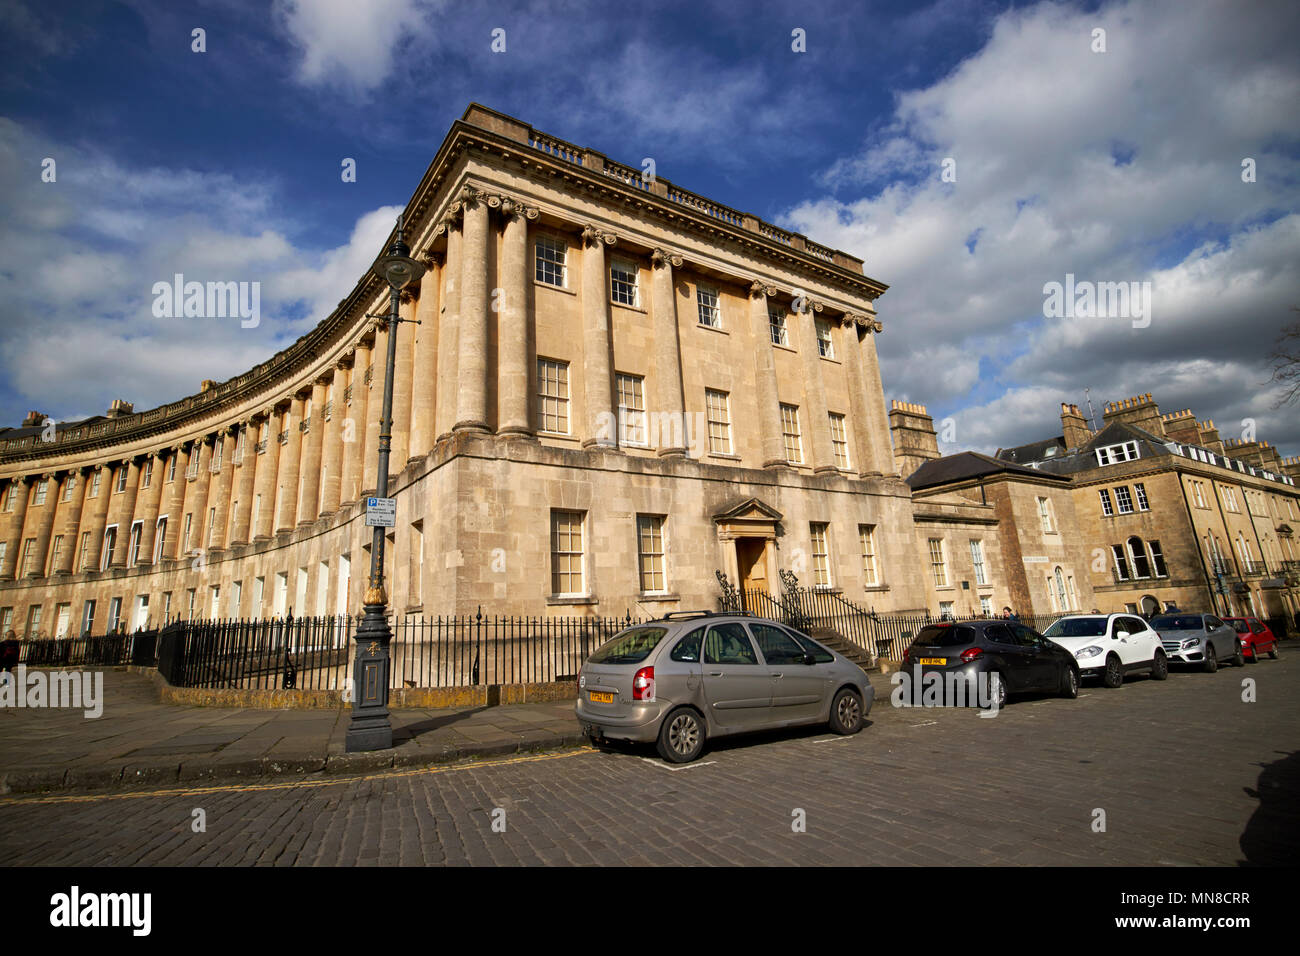 number 1 Royal Crescent bath preservation trust headquarters and museum residential road georgian houses Bath England UK - Stock Image